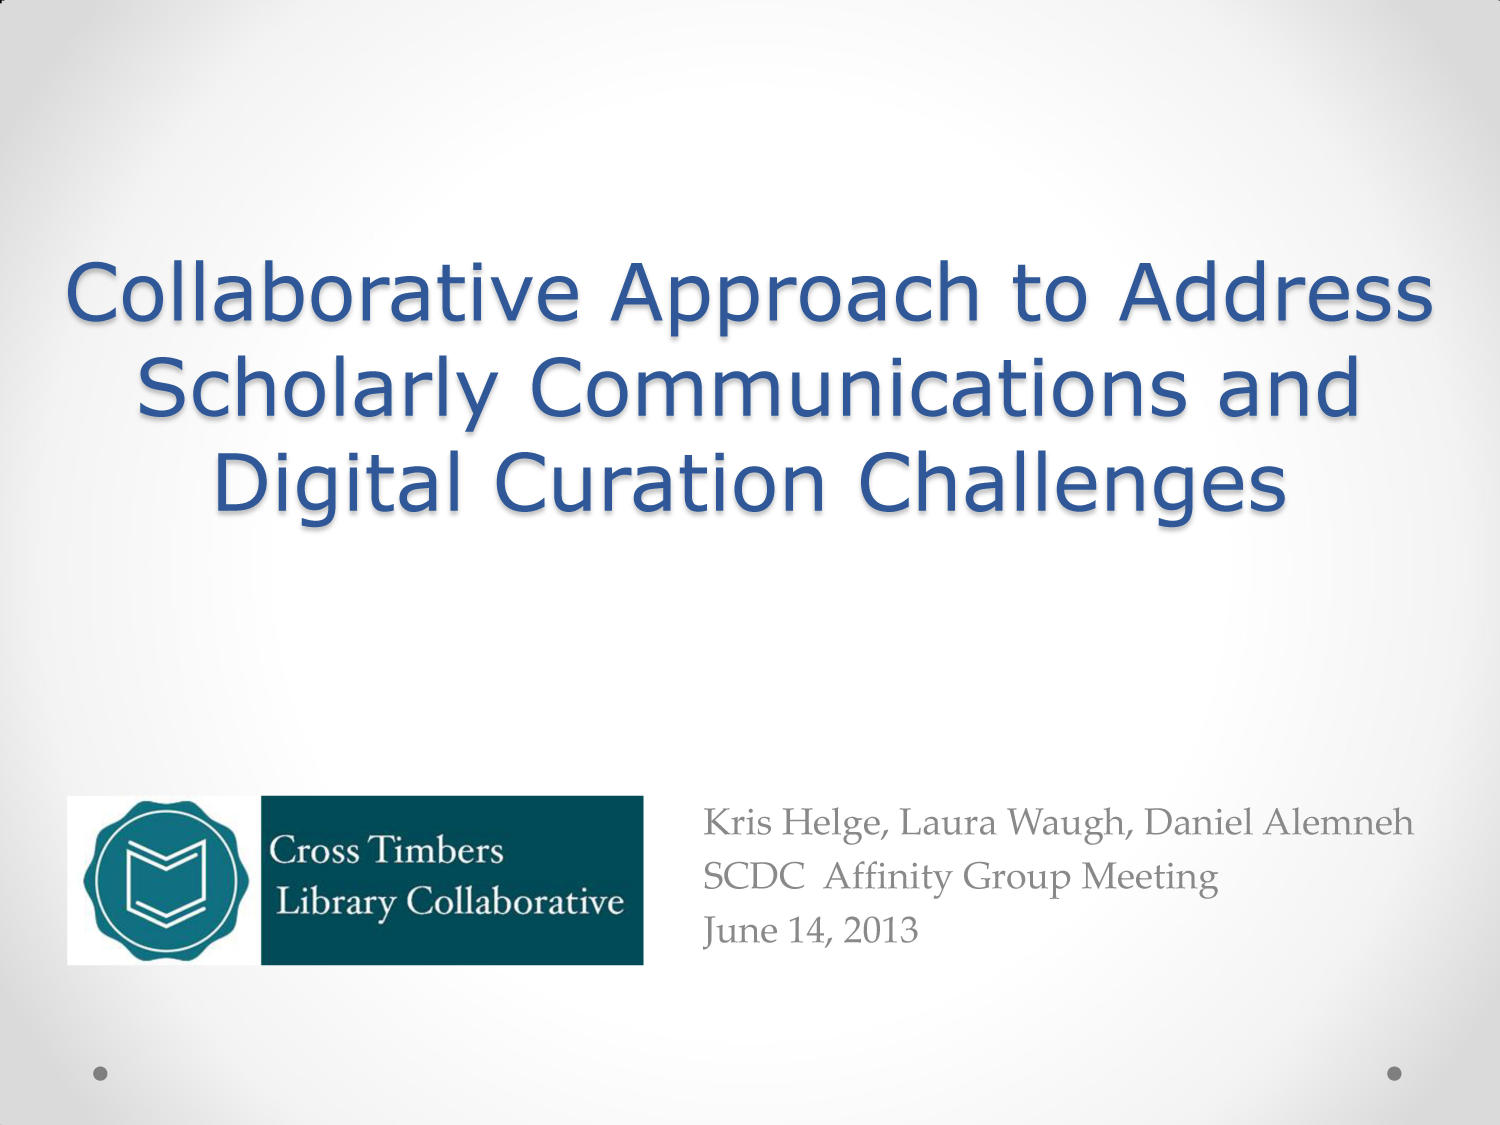 Collaborative Approach to Address Scholarly Communications and Digital Curation Challenges                                                                                                      [Sequence #]: 1 of 23